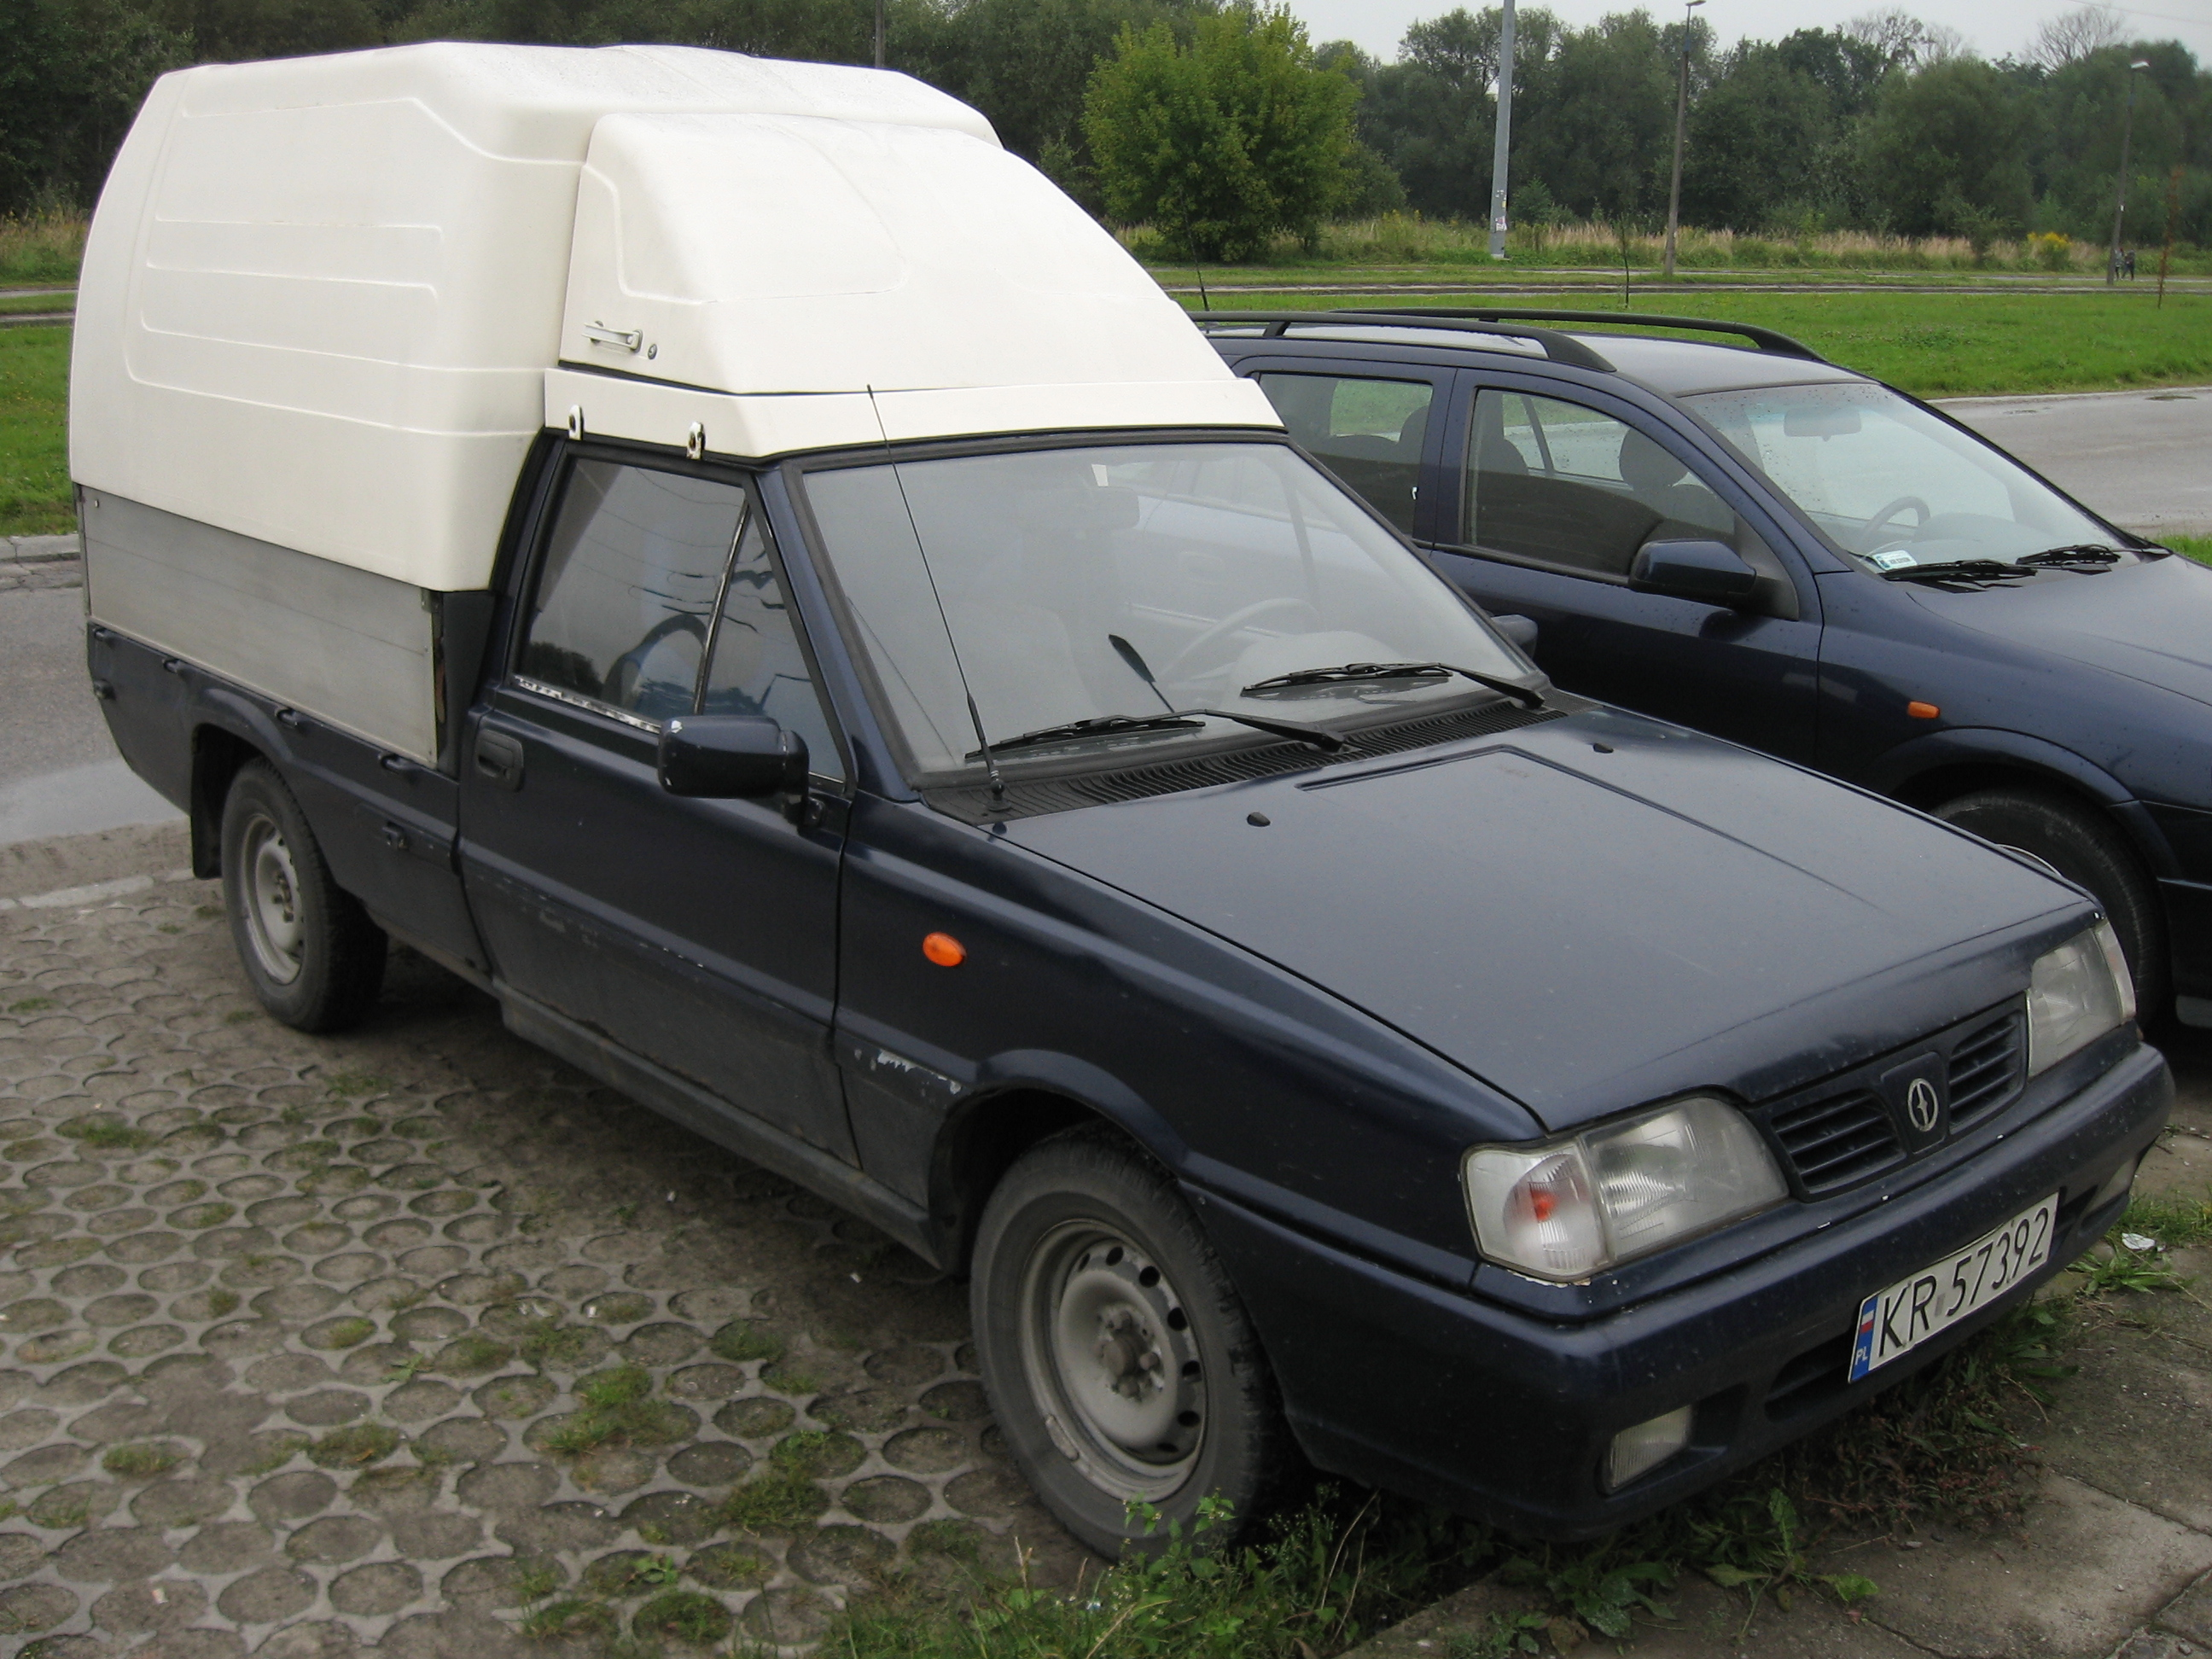 File Daewoo Fso Polonez Truck Plus St 1 9 D On A Parking Lot In